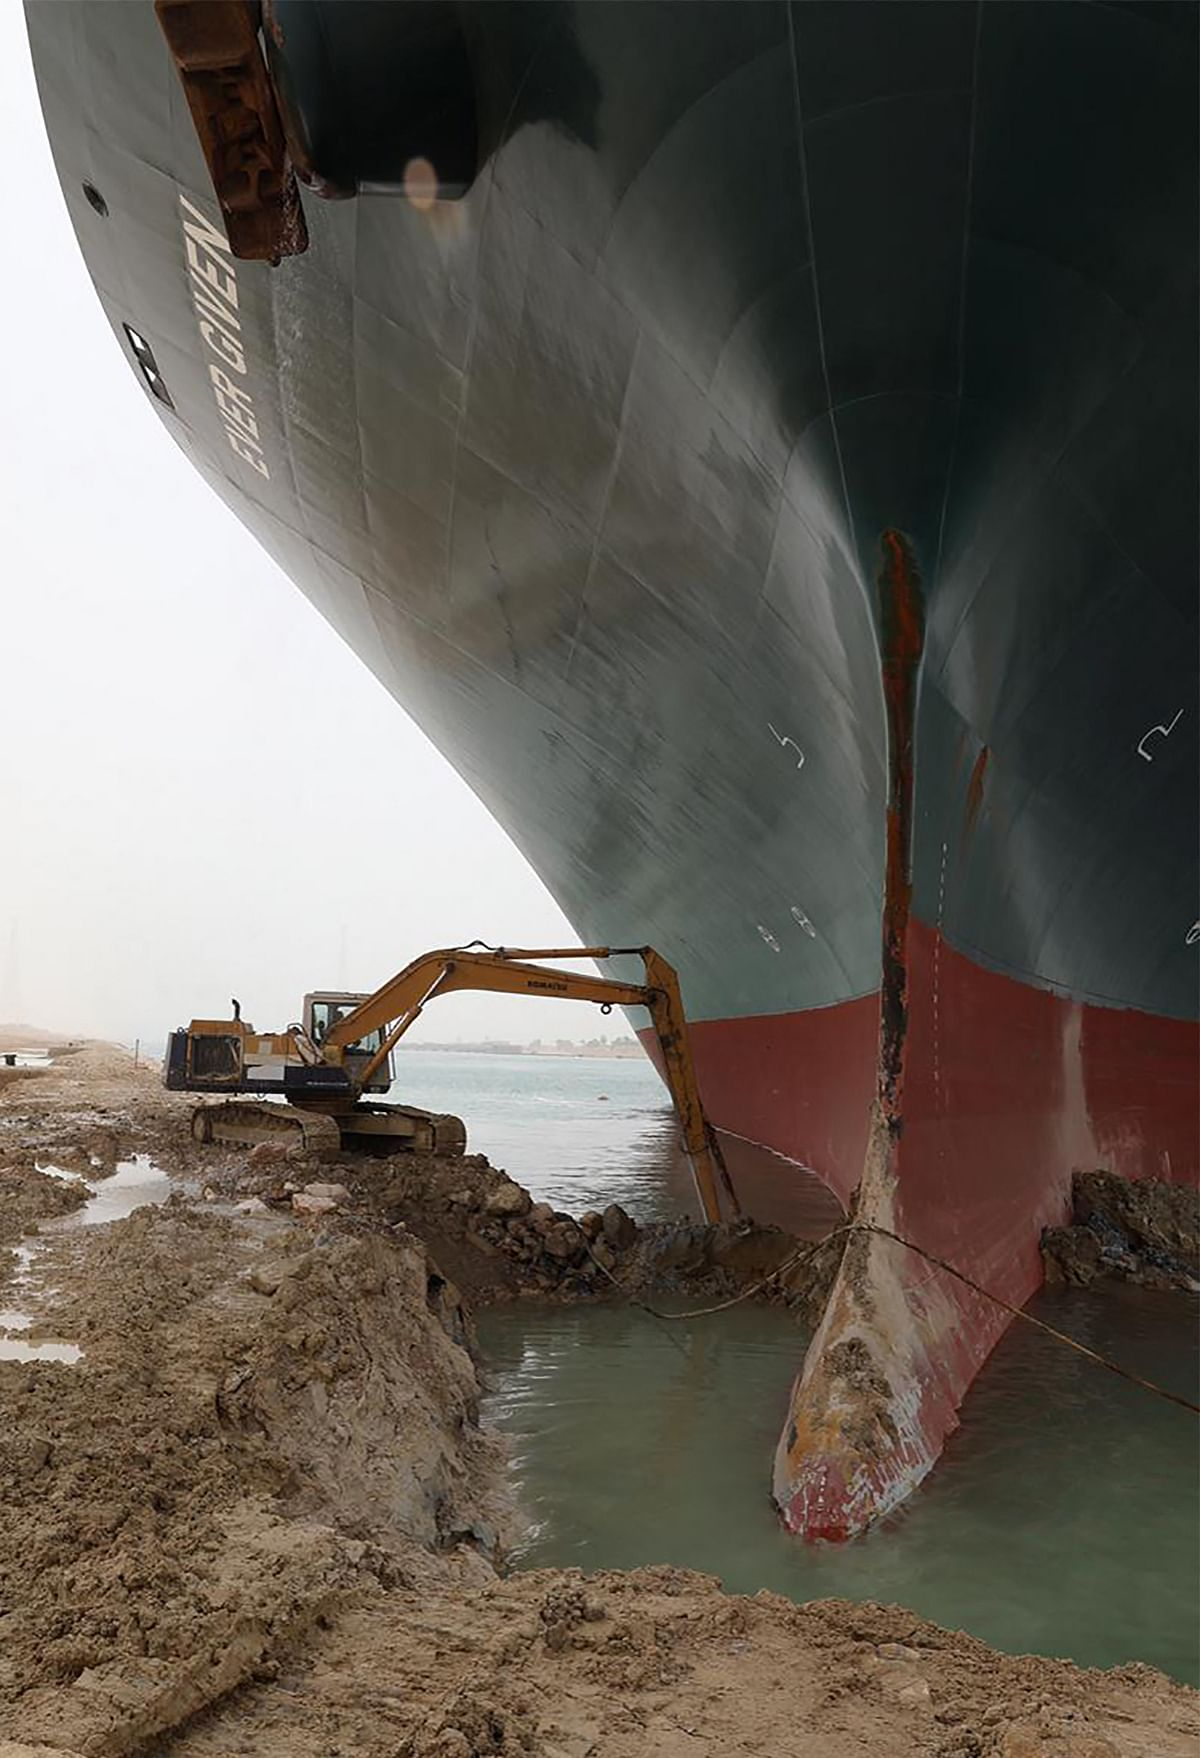 A handout picture released by the Suez Canal Authority on March 25, 2021 shows the Taiwan-owned MV Ever Given lodged sideways and impeding all traffic across the waterway